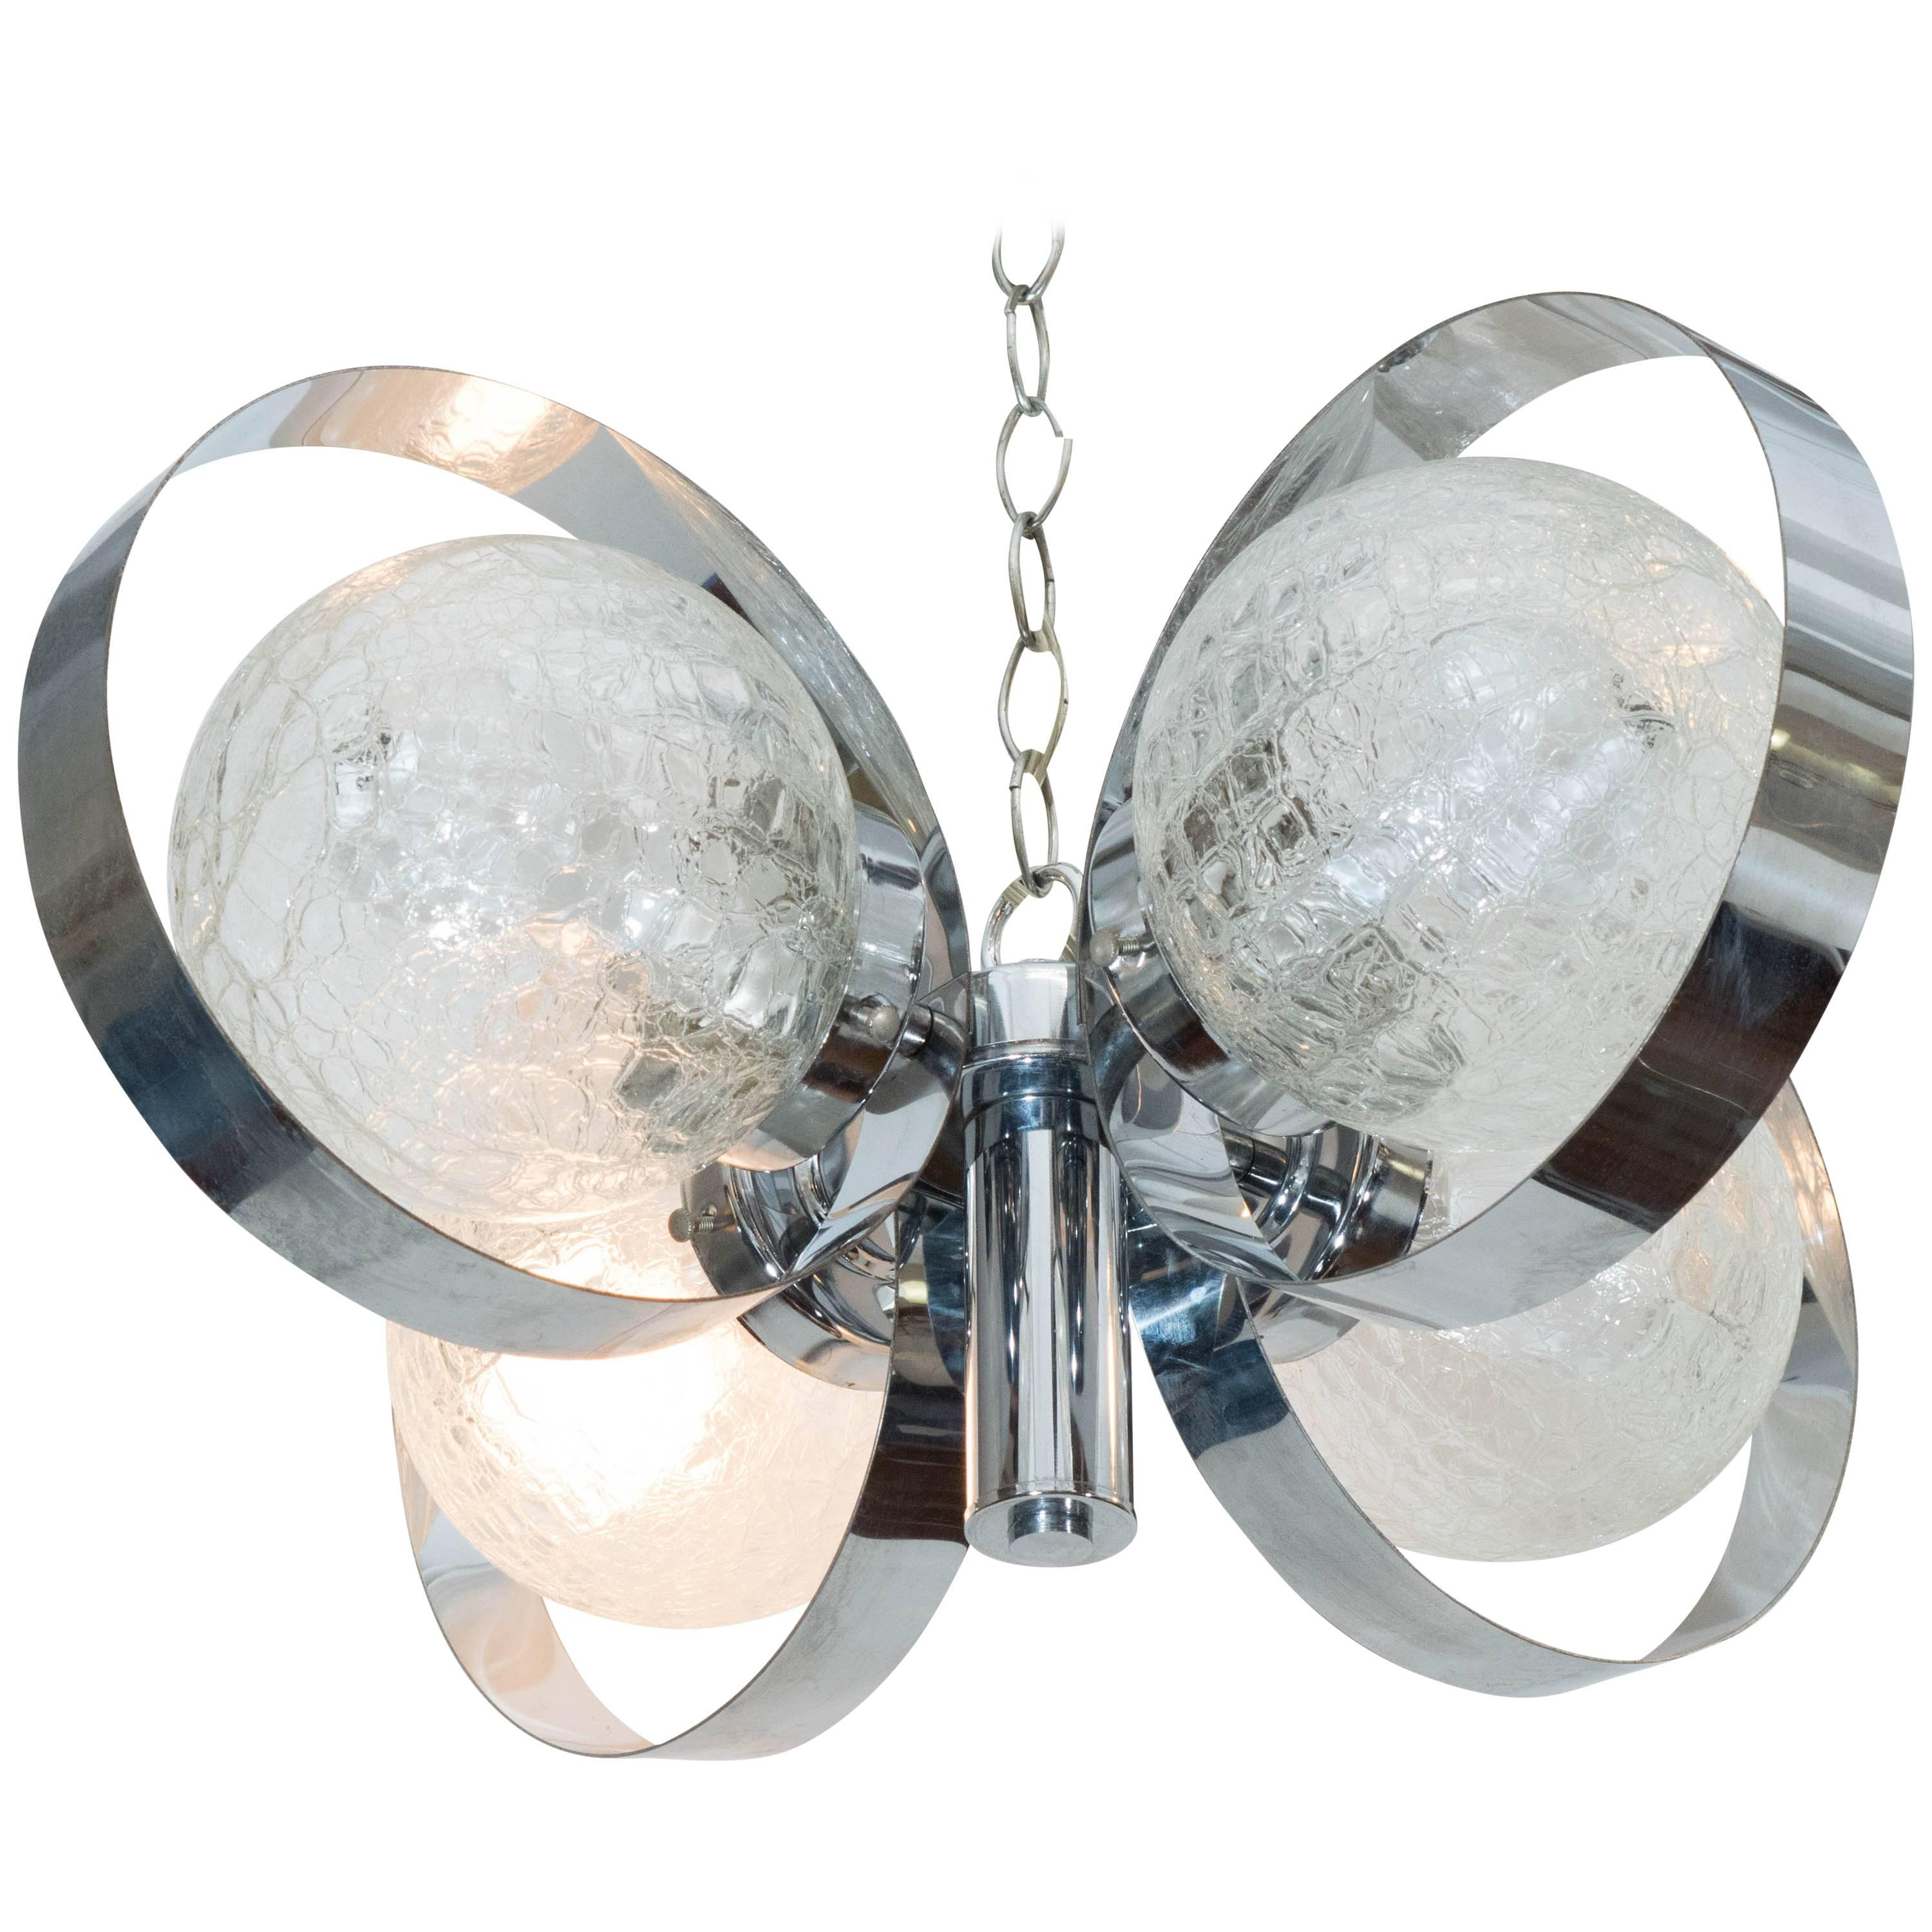 Italian 1970s Chrome Ring Chandelier with Crackle Glass Globes